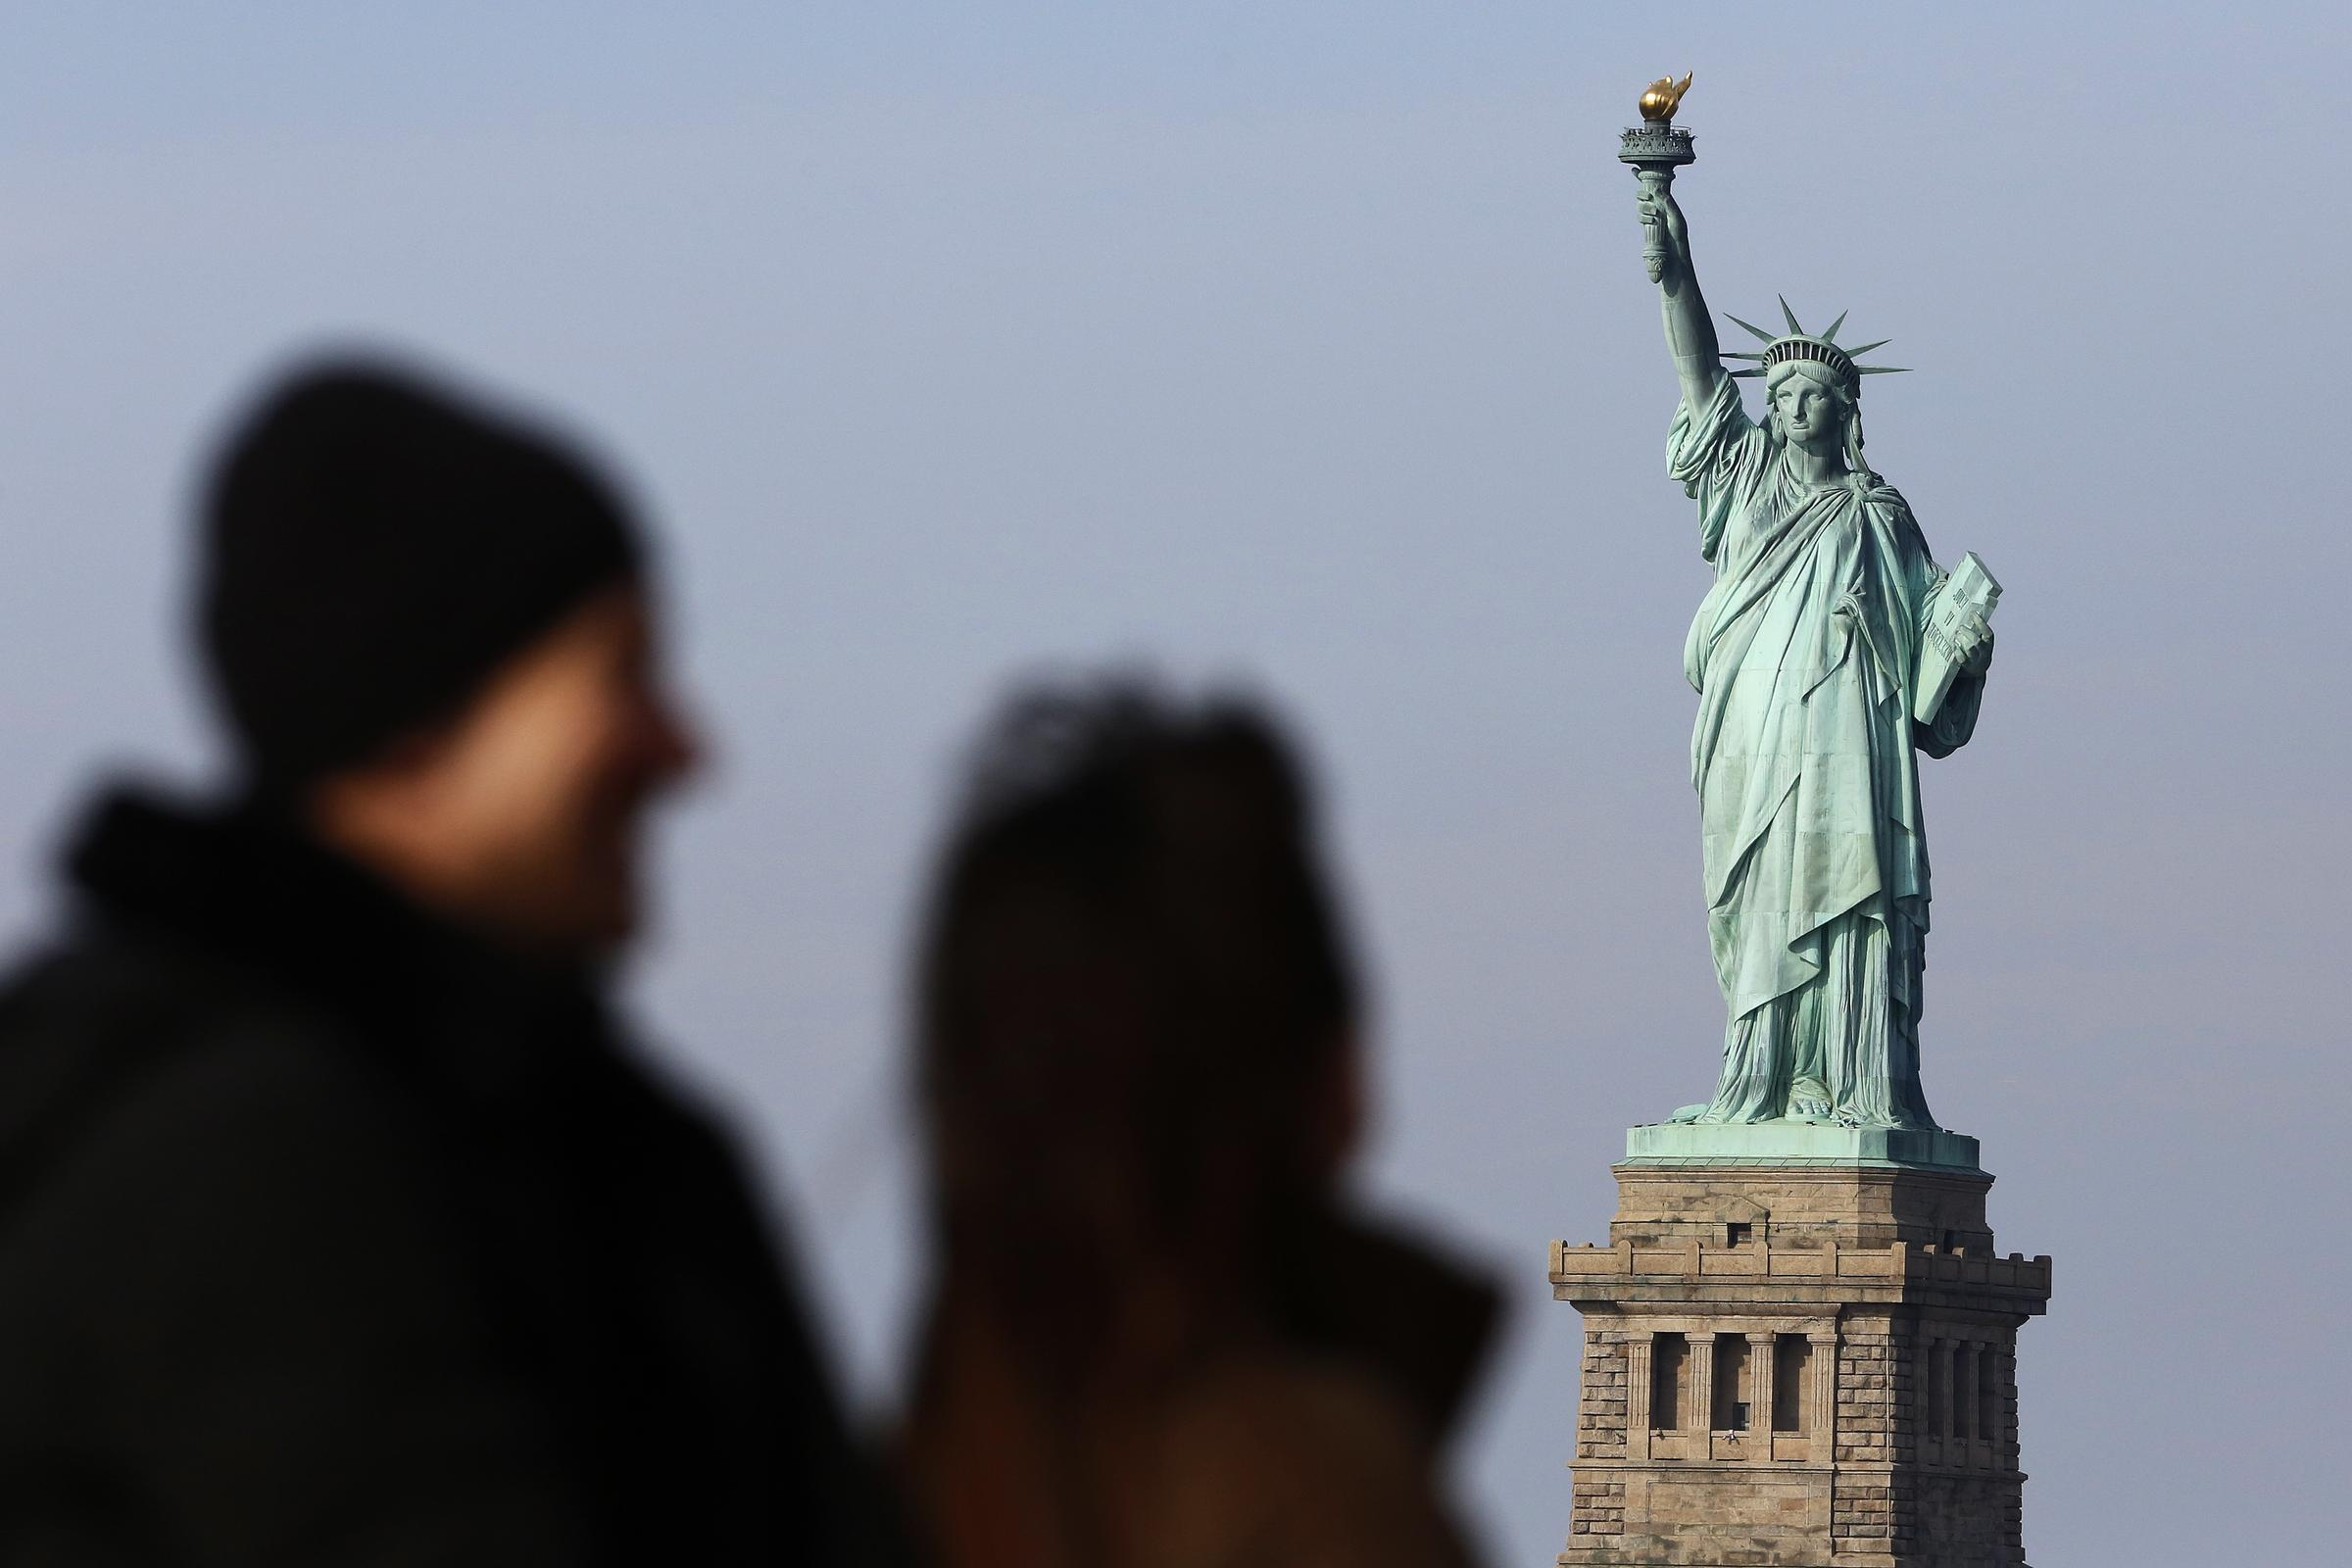 The Newest: Governor vows to reopen Statue of Liberty